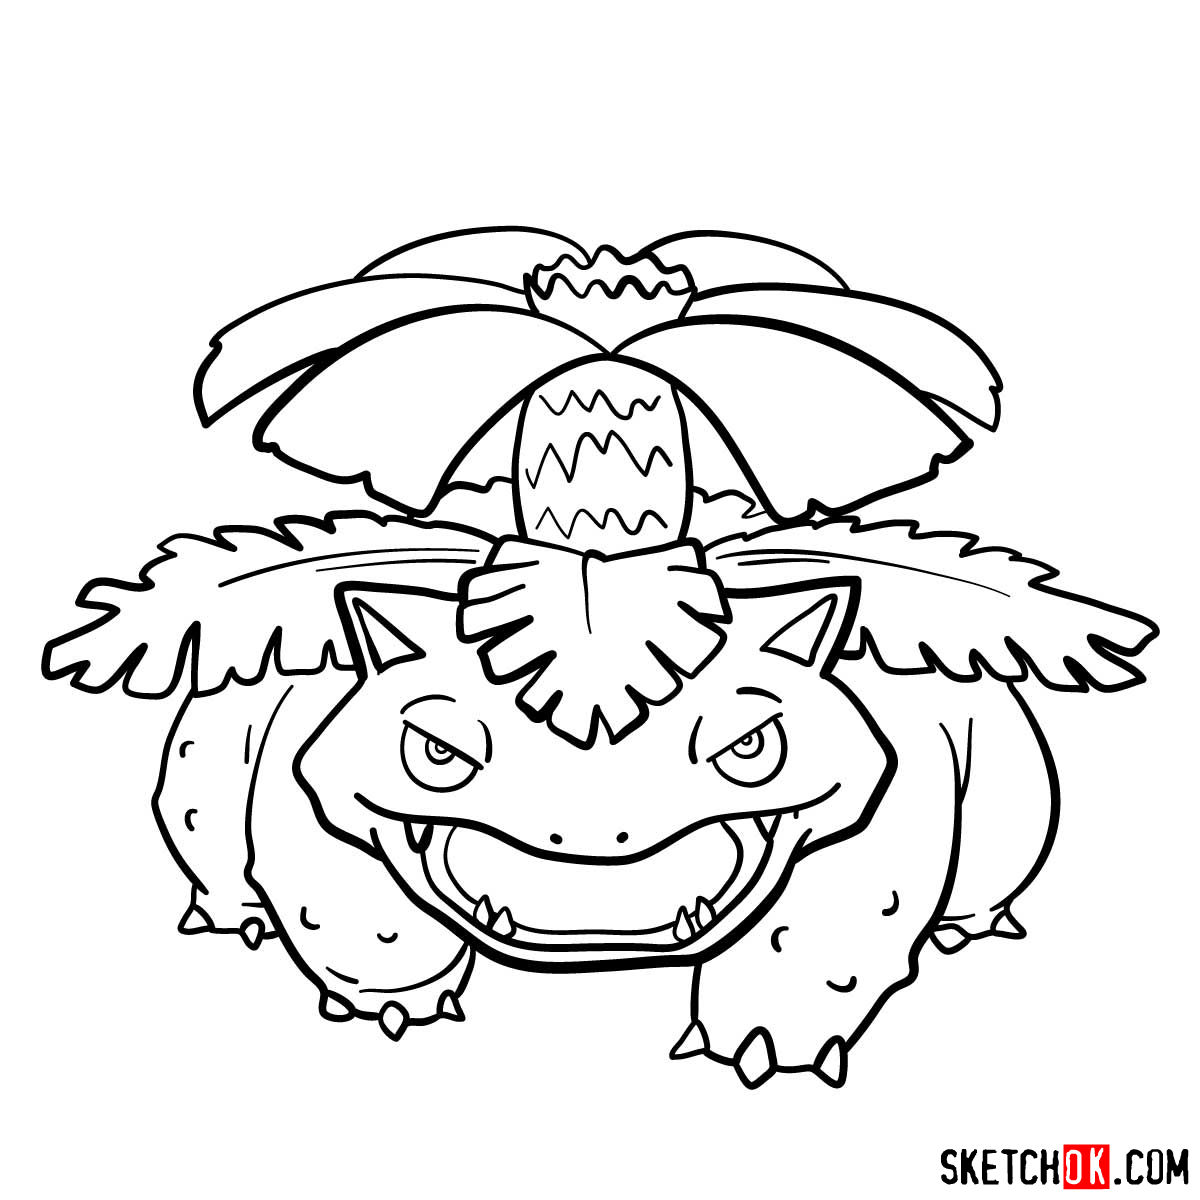 How to draw Venusaur Pokemon - step 13